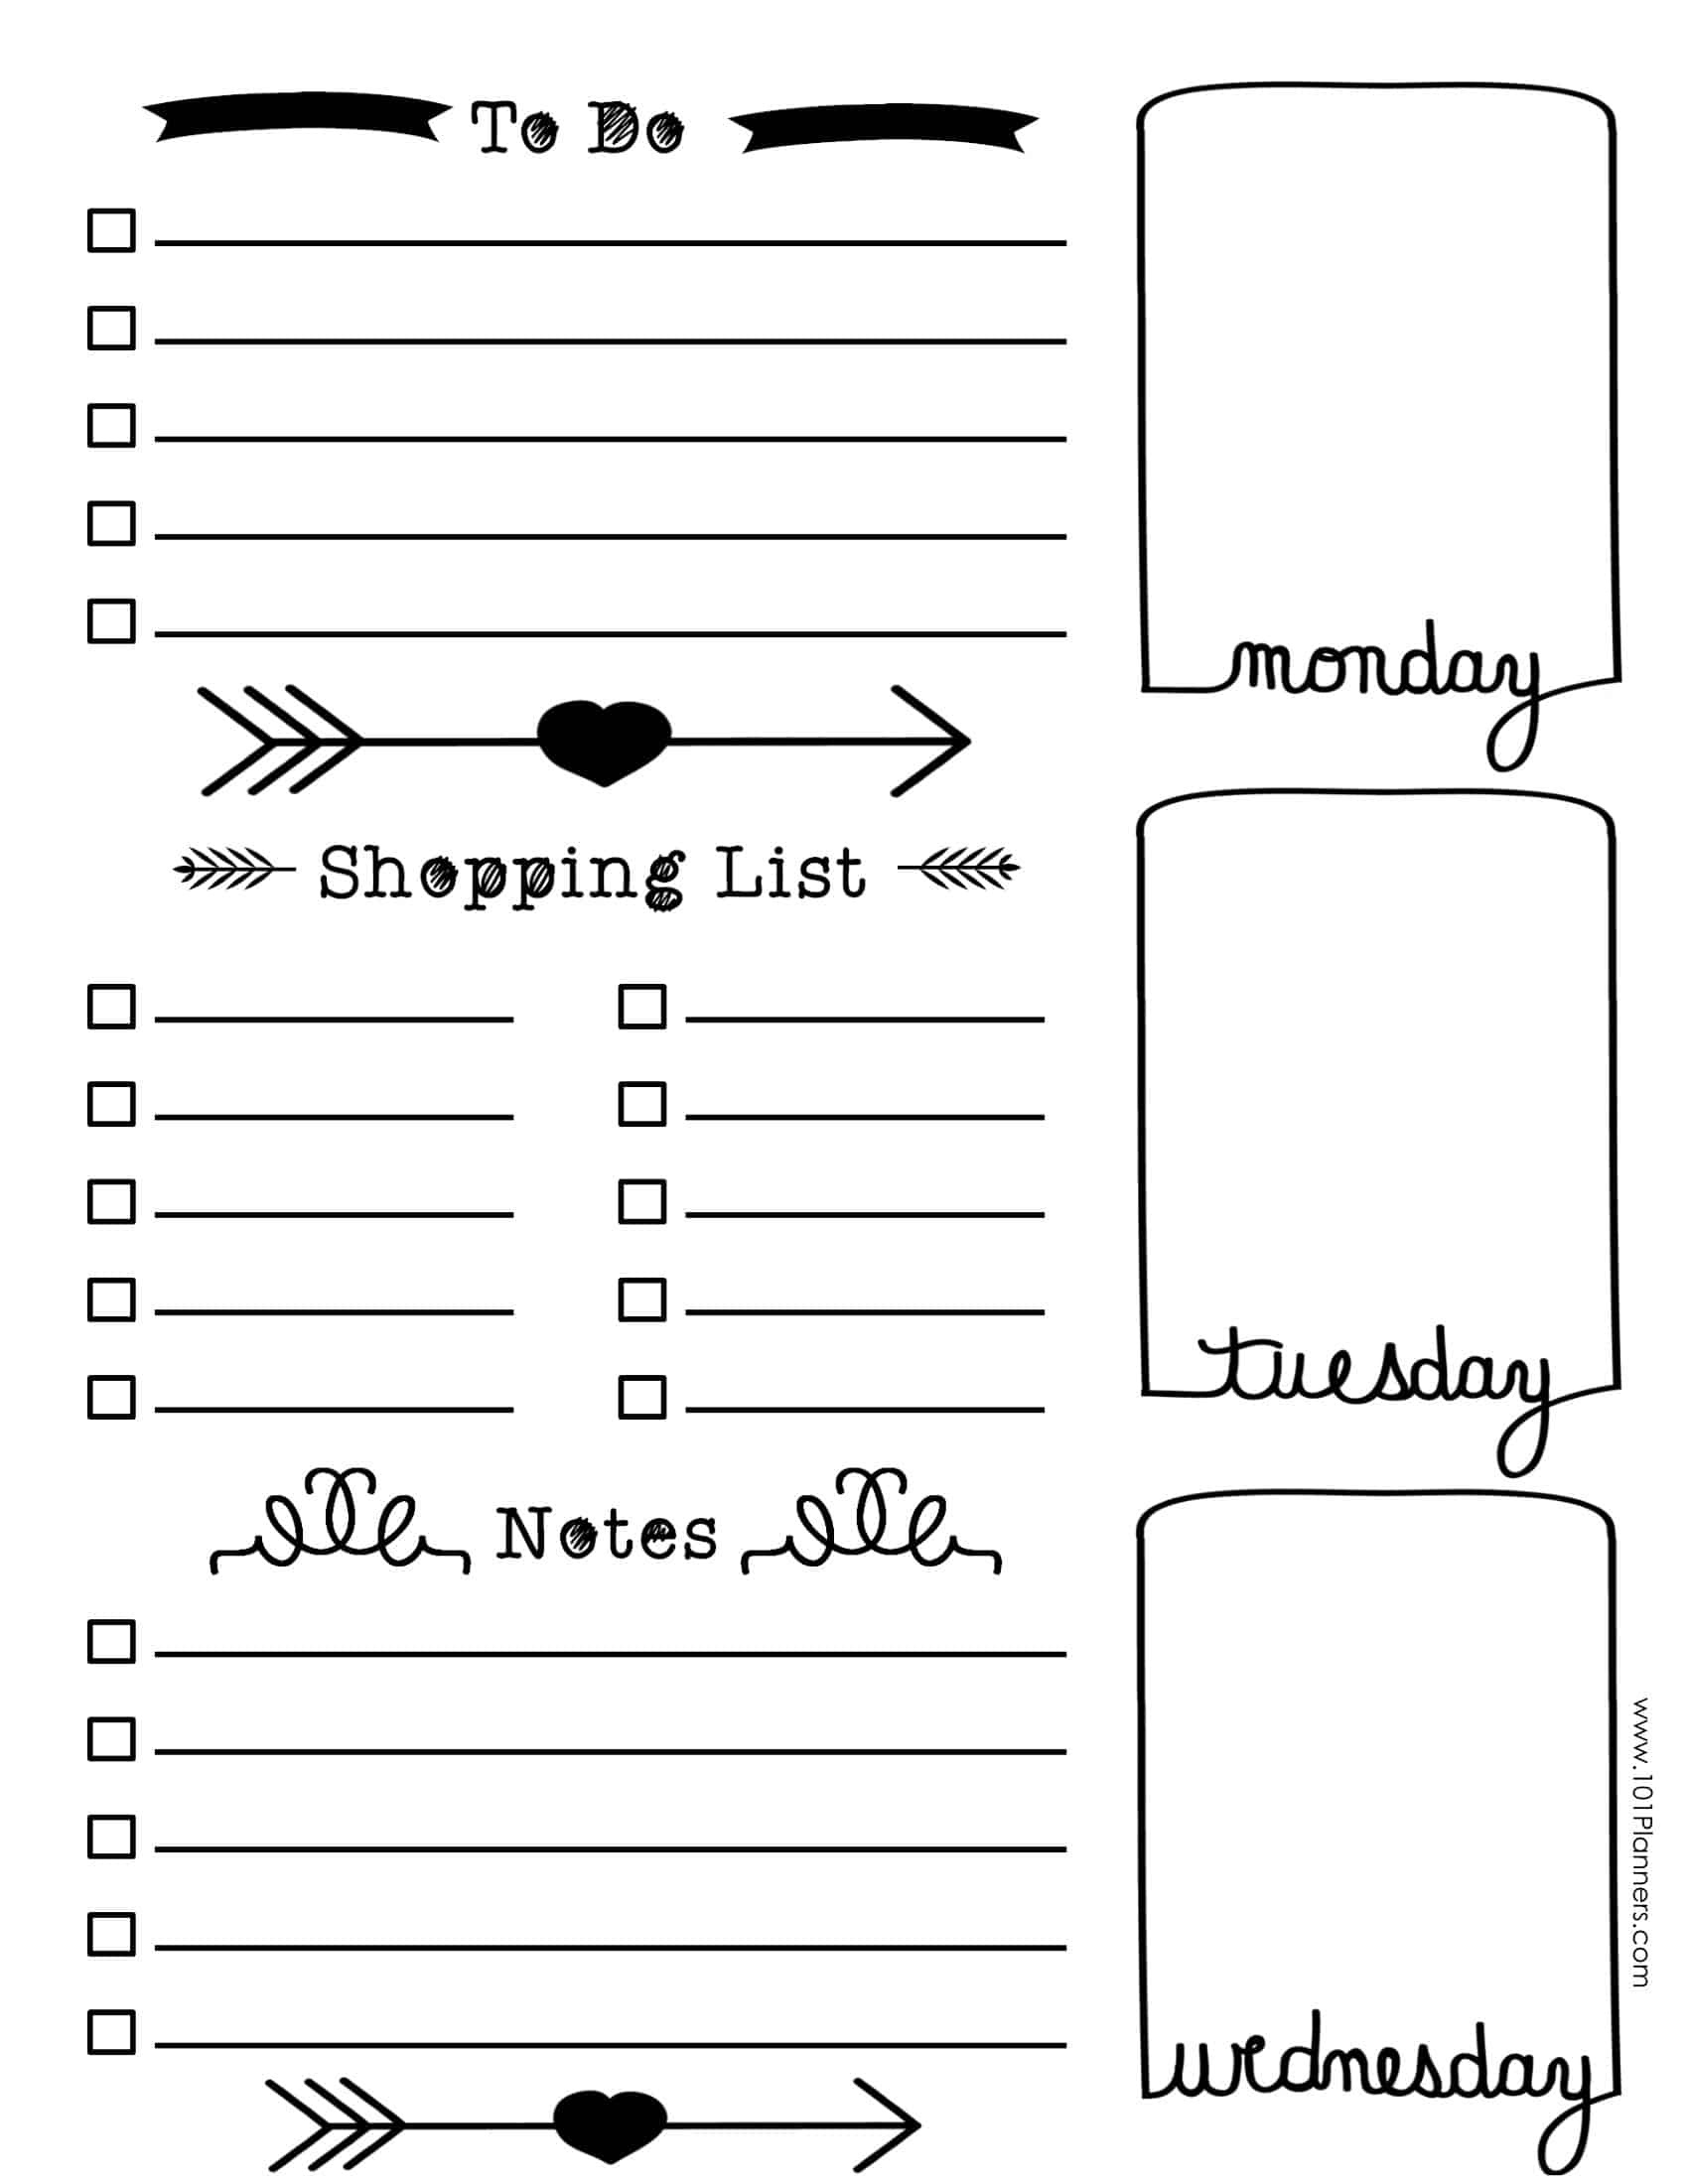 Free Bullet Journal Printables | Customize Online For Any Planner Size - Free Printable Journal Templates